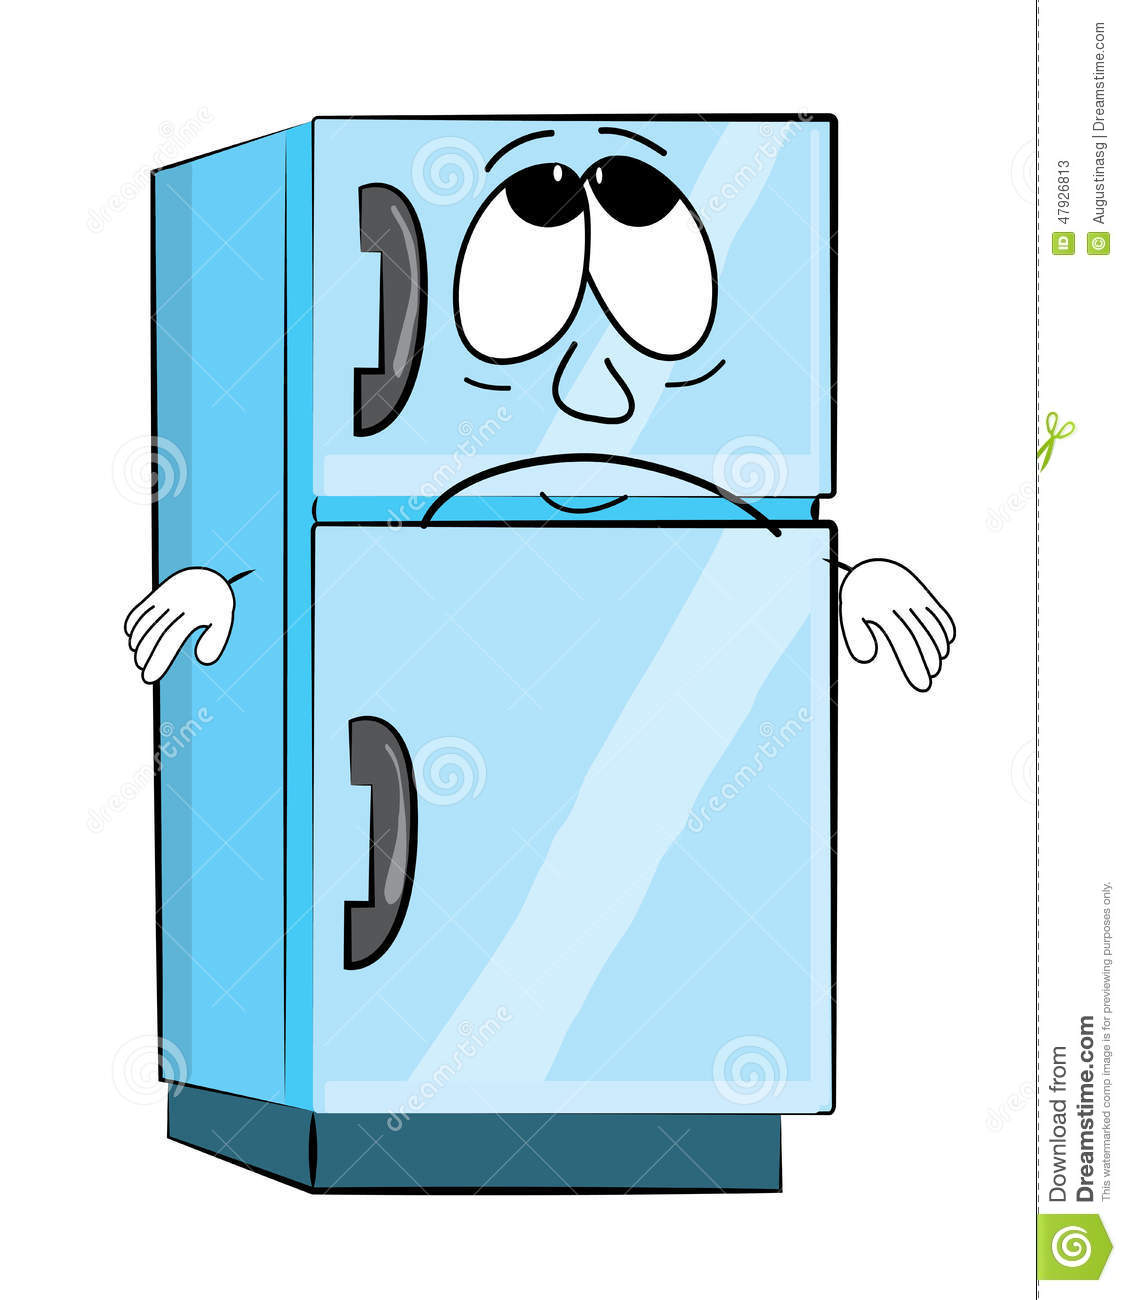 Broken freeezer free clipart graphic library Cartoon Refrigerator Clipart | Free download best Cartoon ... graphic library